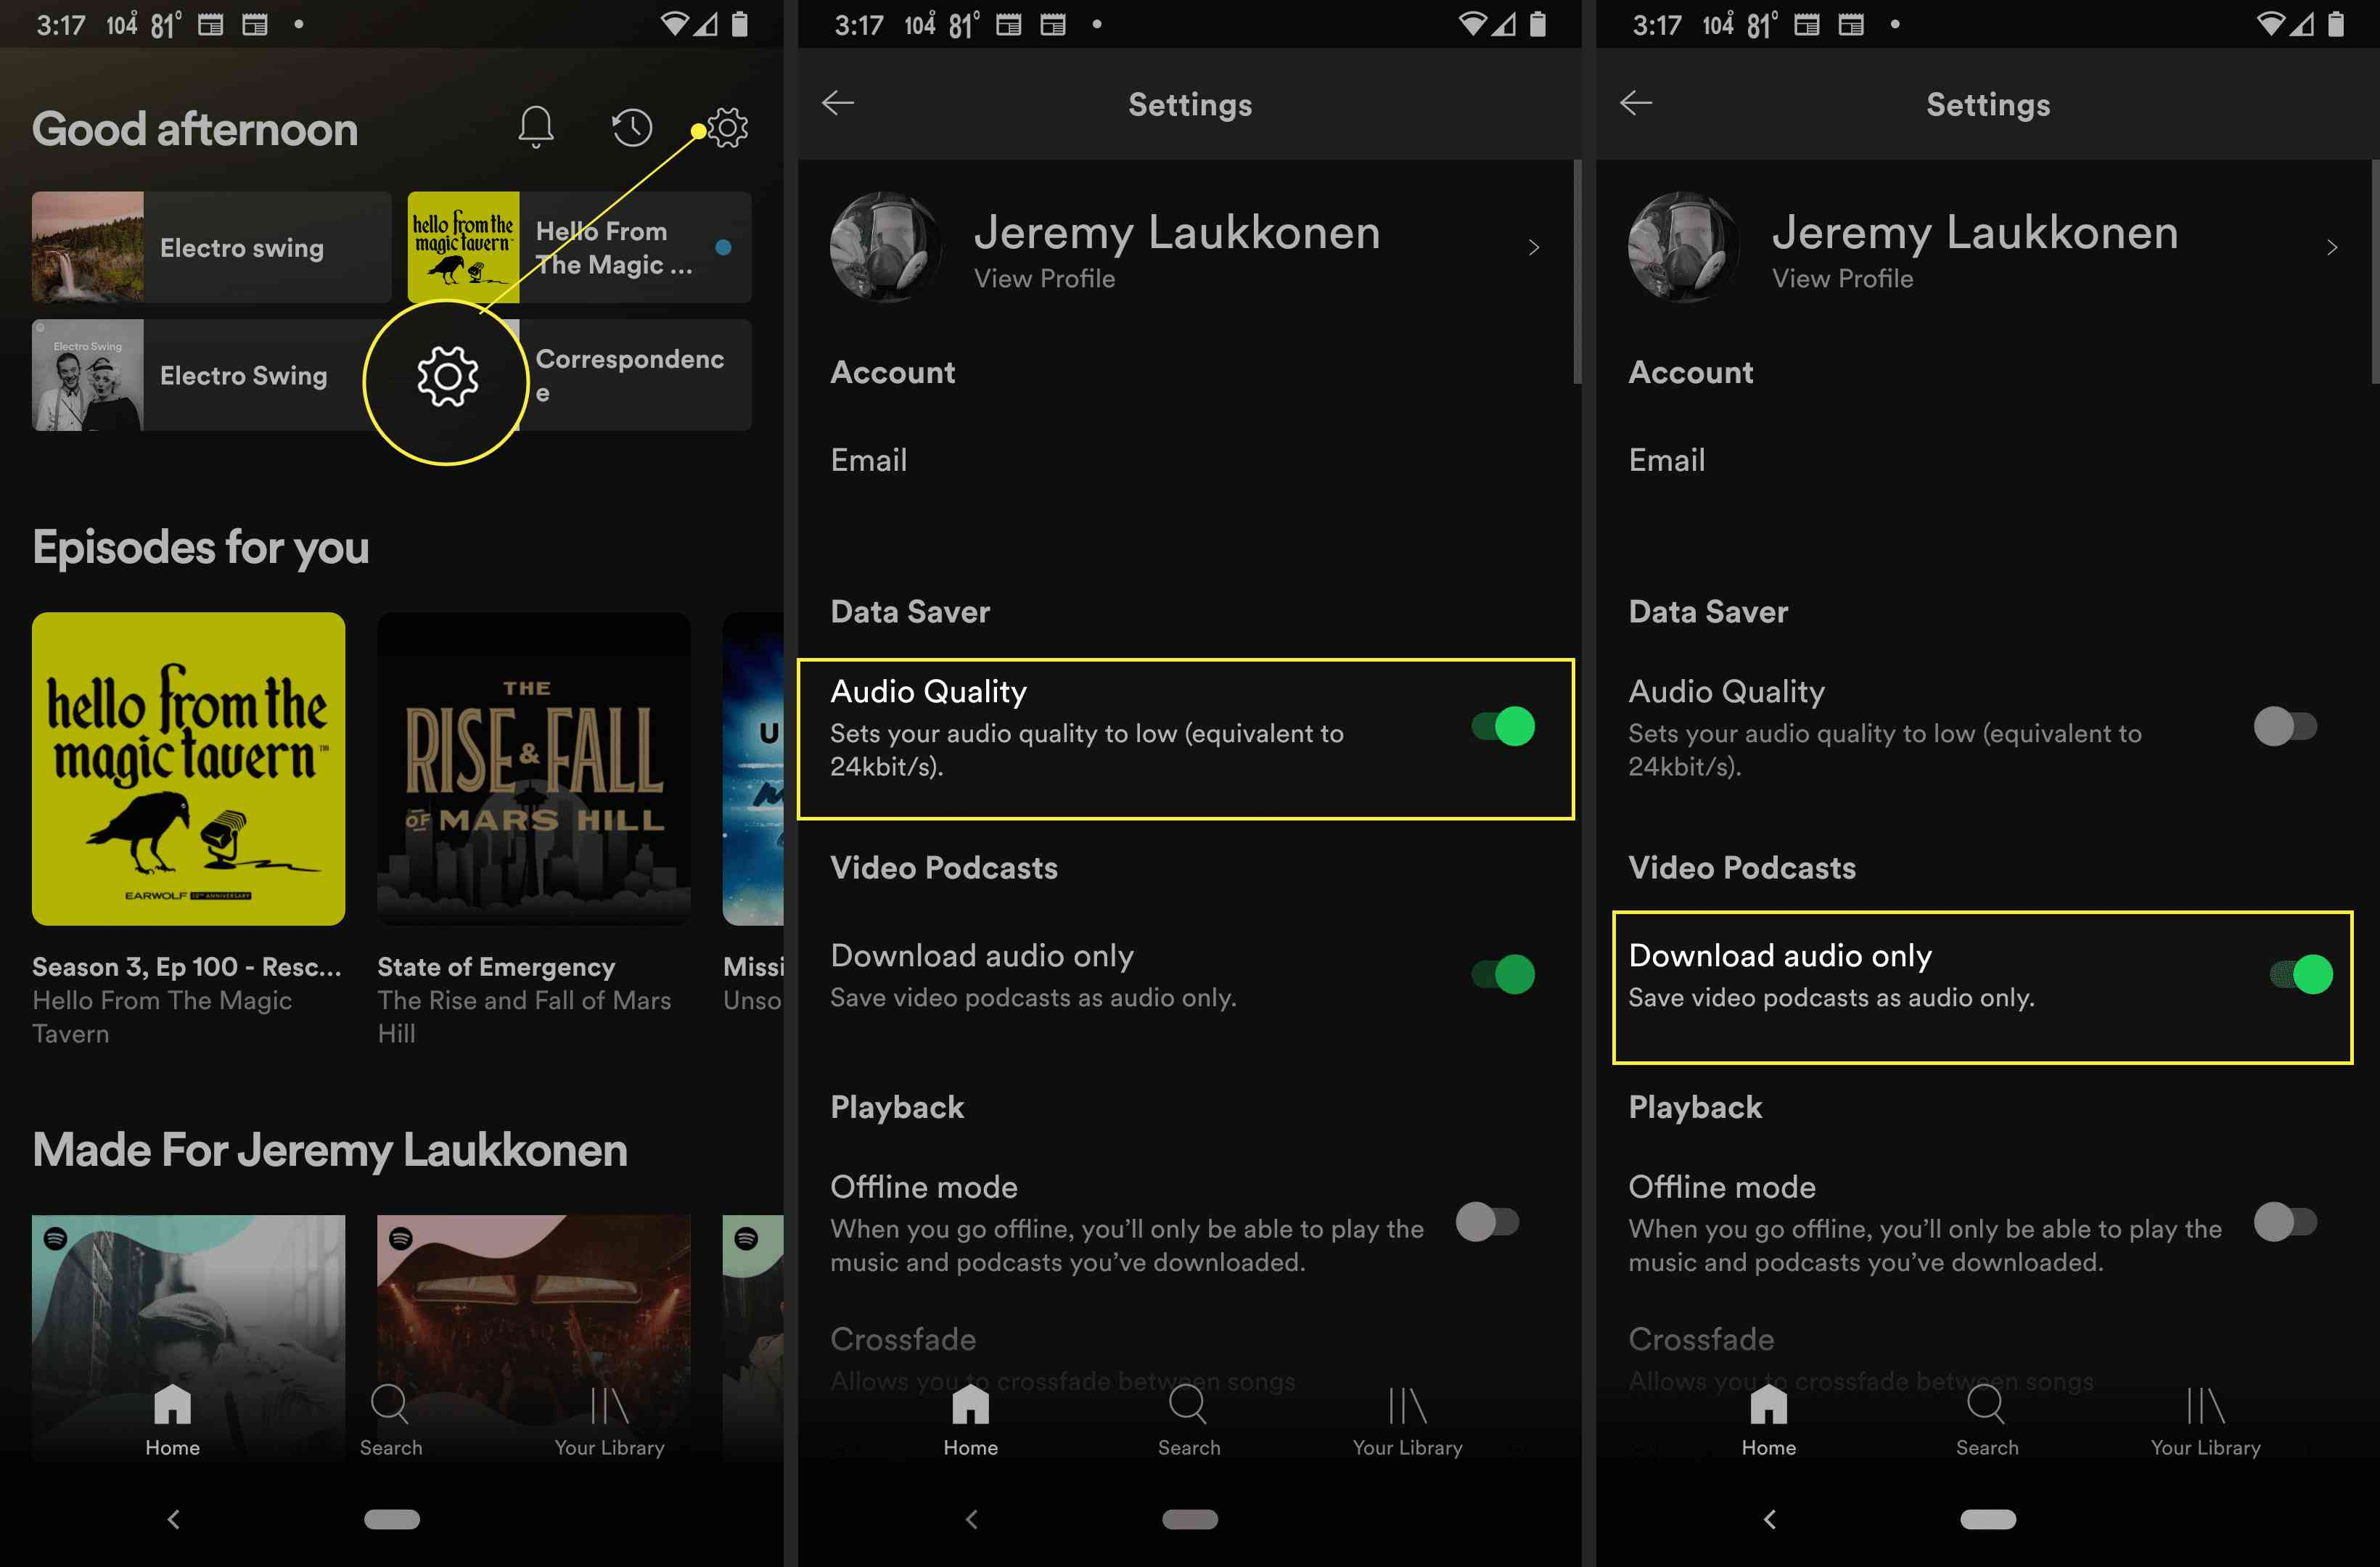 Spotify app with Settings gear, Audio Quality toggle, and Download audio only toggle highlighted